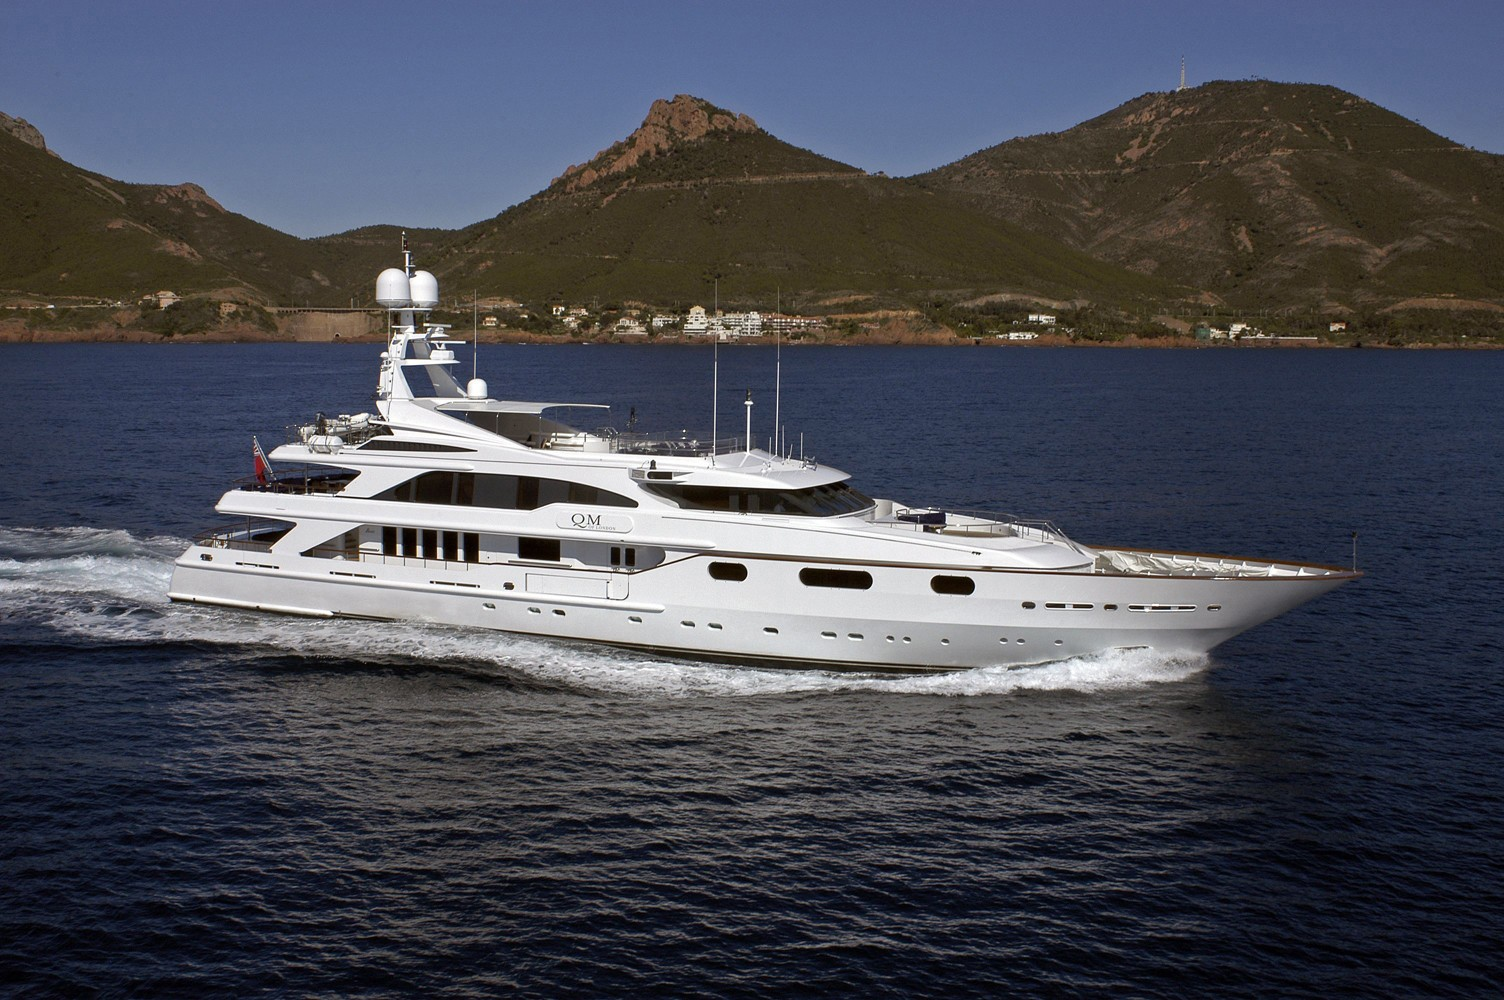 Overview: Yacht QM OF LONDON's Cruising Image